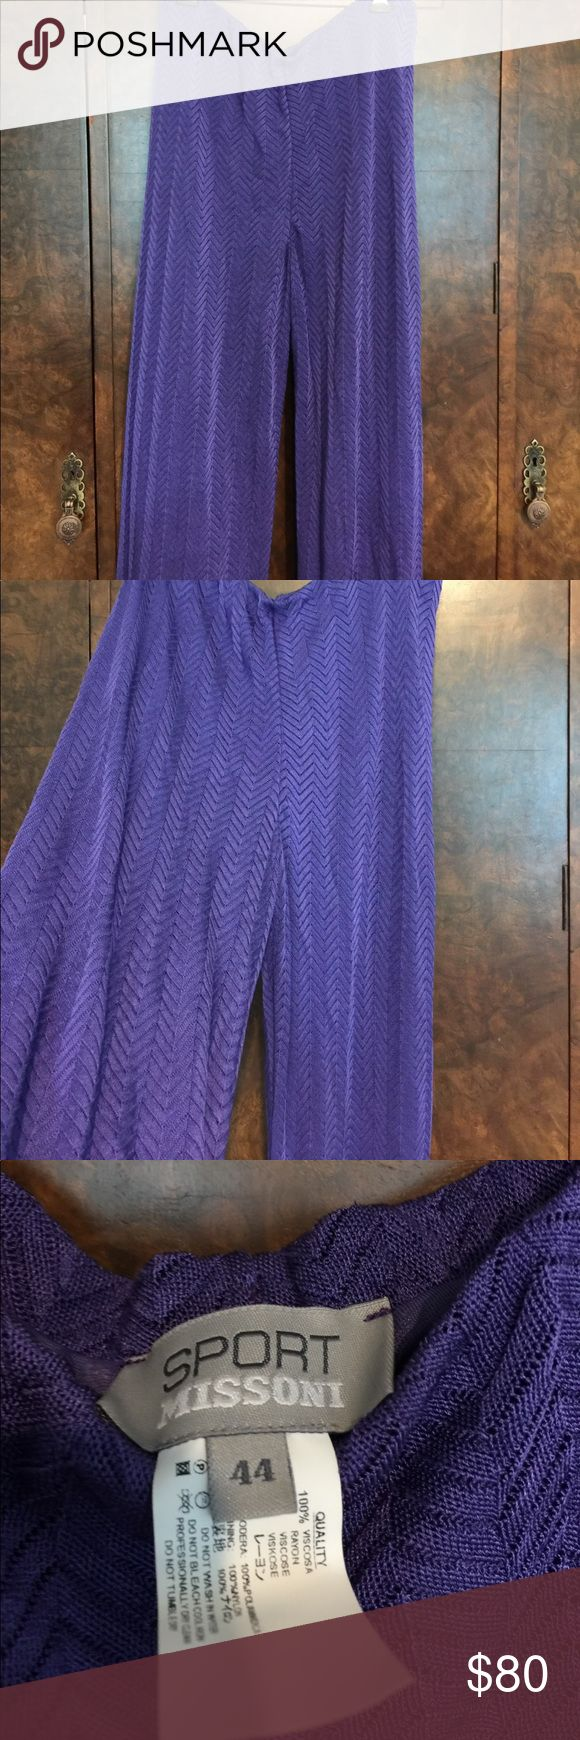 Missoni Pants IT 44 purple Gorgeous Missoni pants with iconic chevron print in purple. Size IT 44. Gently used. Has a lining for the pants. Would look great as with some of the Missoni bikinis I have listed. Please check out my other Missoni listings. (Was in a Missoni phase some time ago and purchased all these pieces at a high end boutique in Europe. ) Now you can get these Missoni pieces for great prices! Missoni Sport Pants